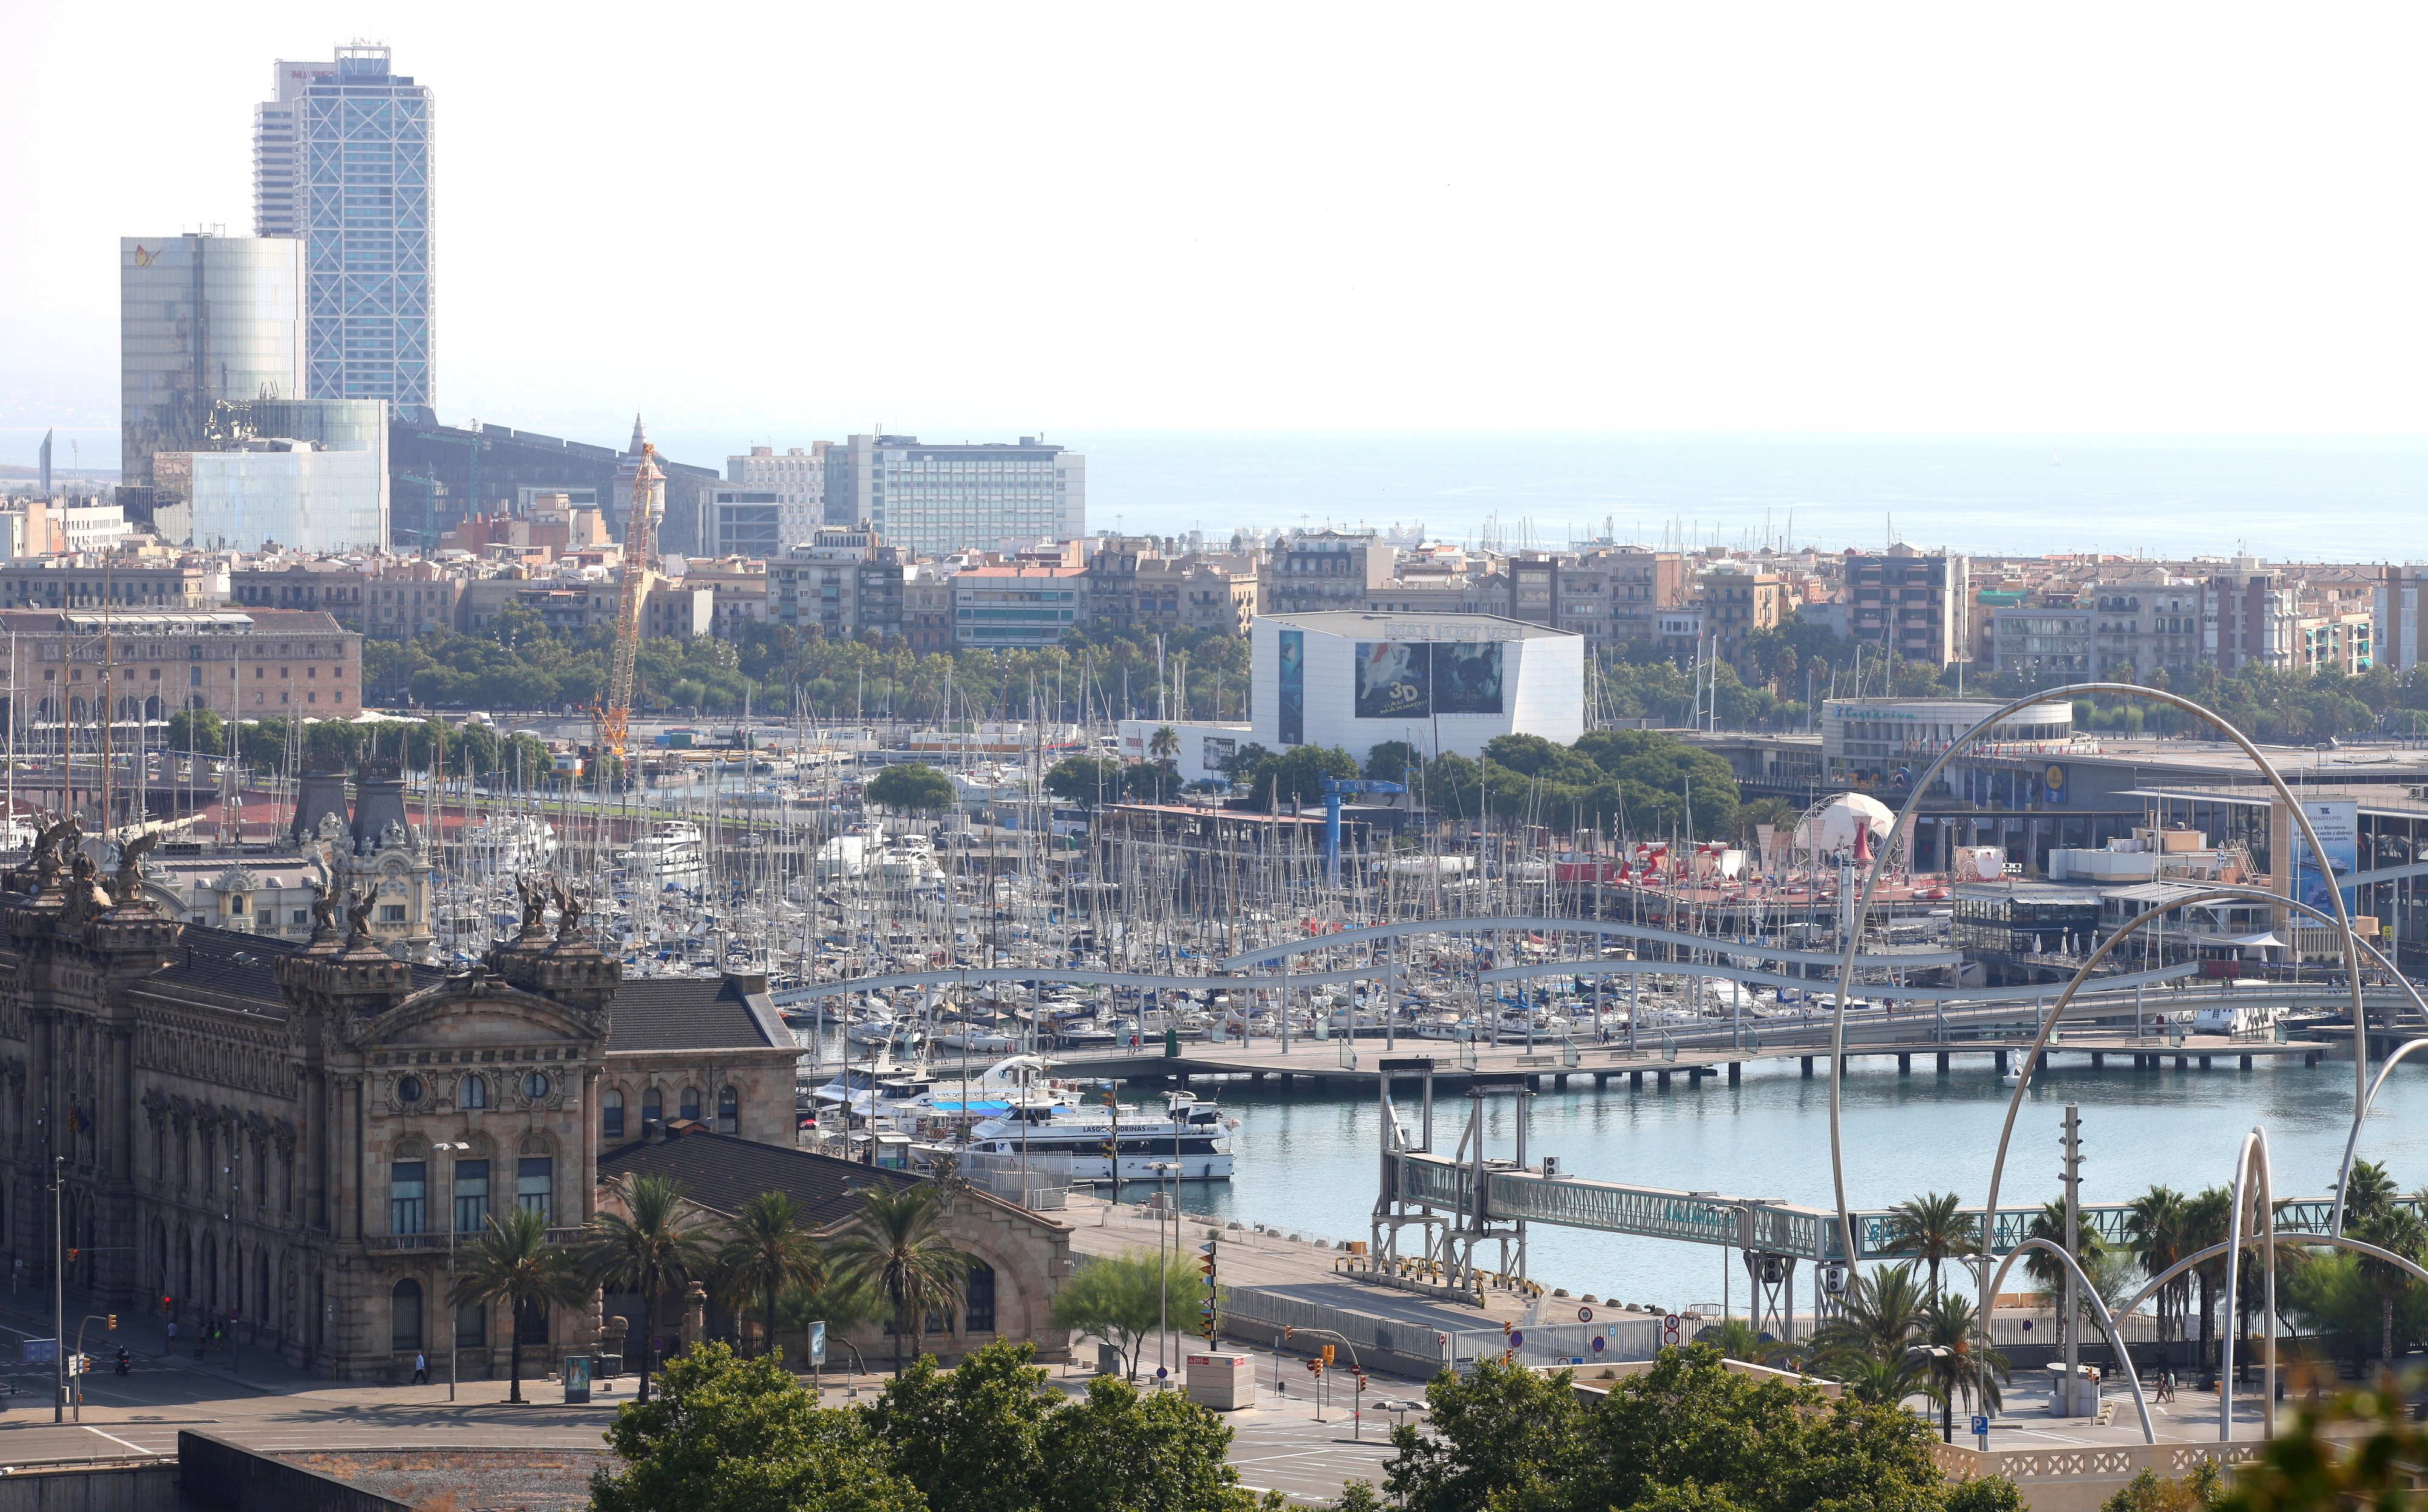 Barcelona, Spain, Europe, August 2013, picture 14